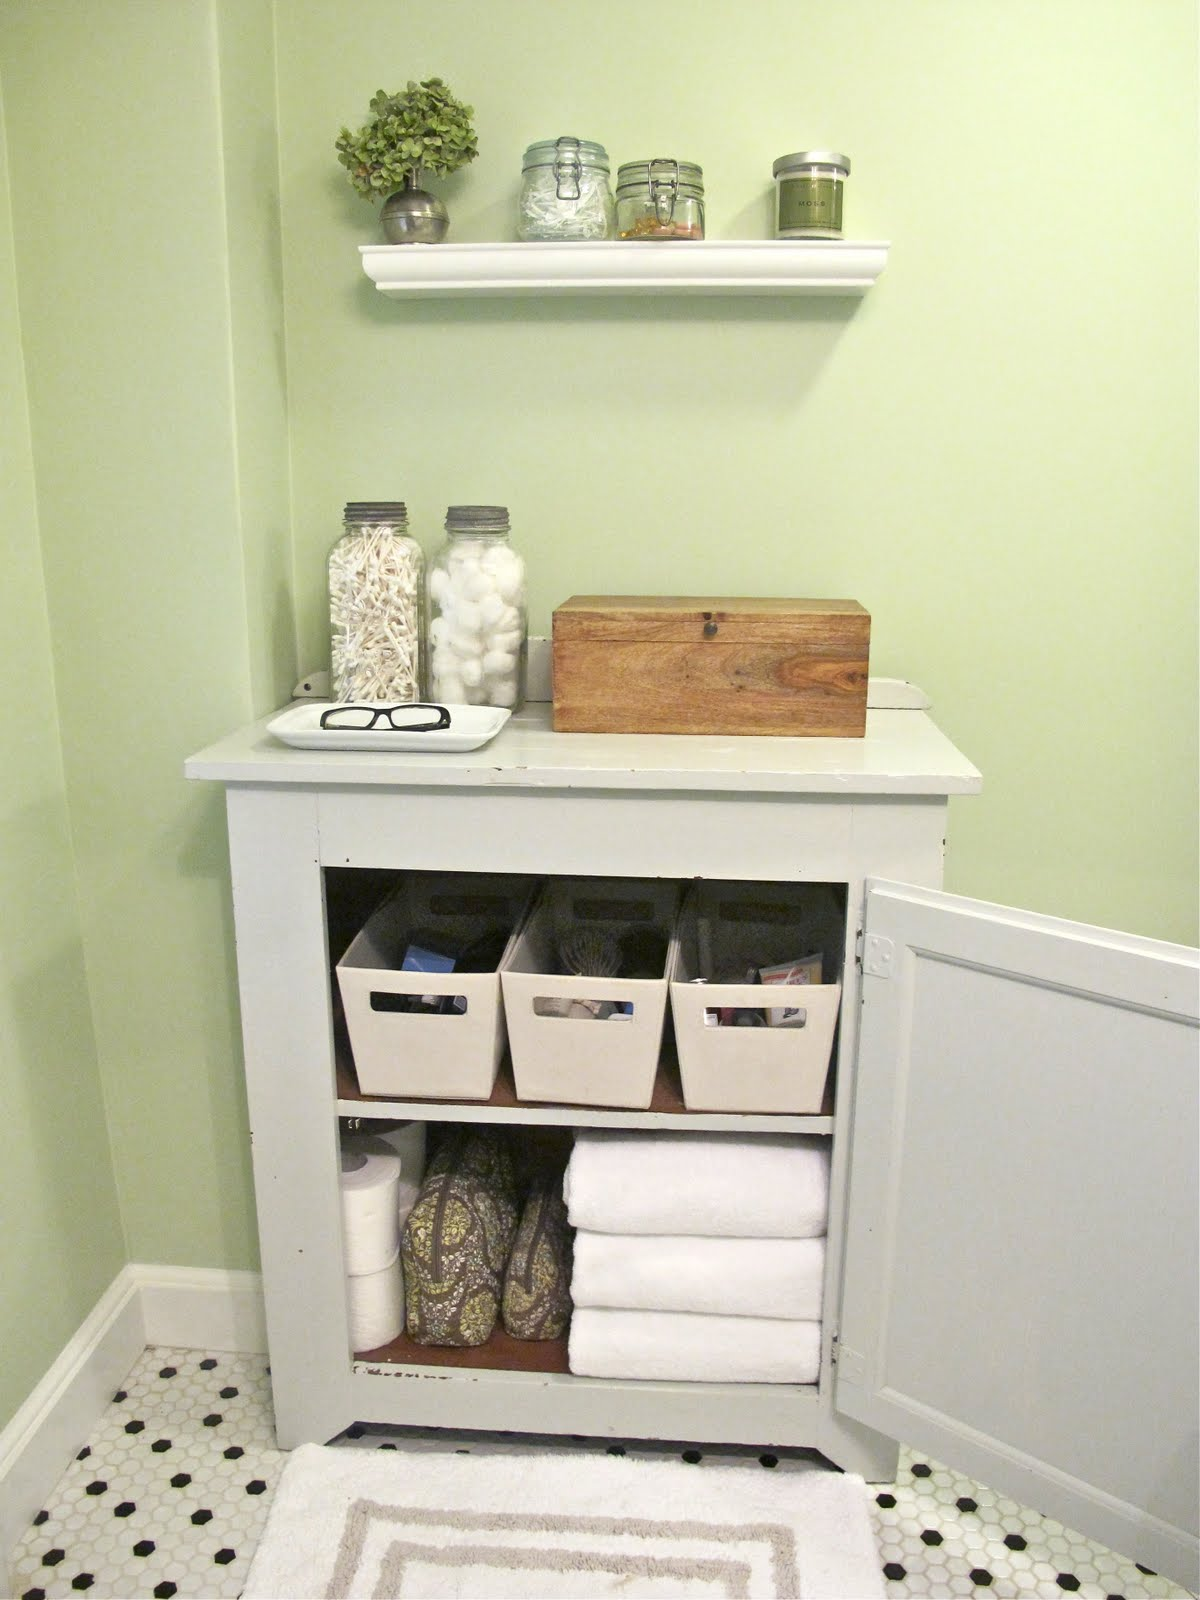 Amazing Small Bathroom Storage CabiIdeas 1200 x 1600 · 138 kB · jpeg